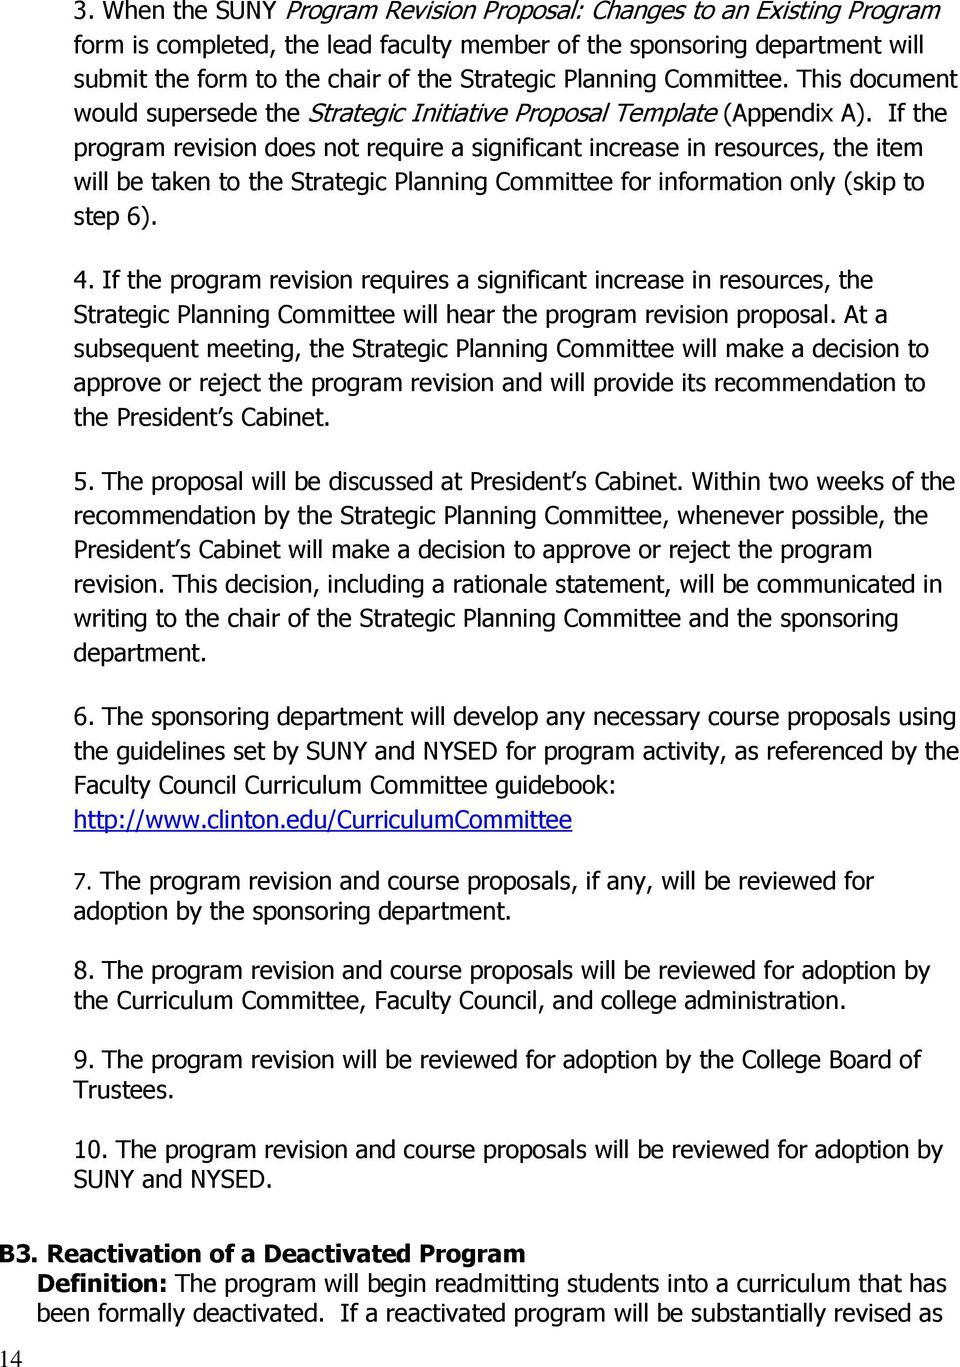 If the program revision does not require a significant increase in resources, the item will be taken to the Strategic Planning Committee for information only (skip to step 6). 4.